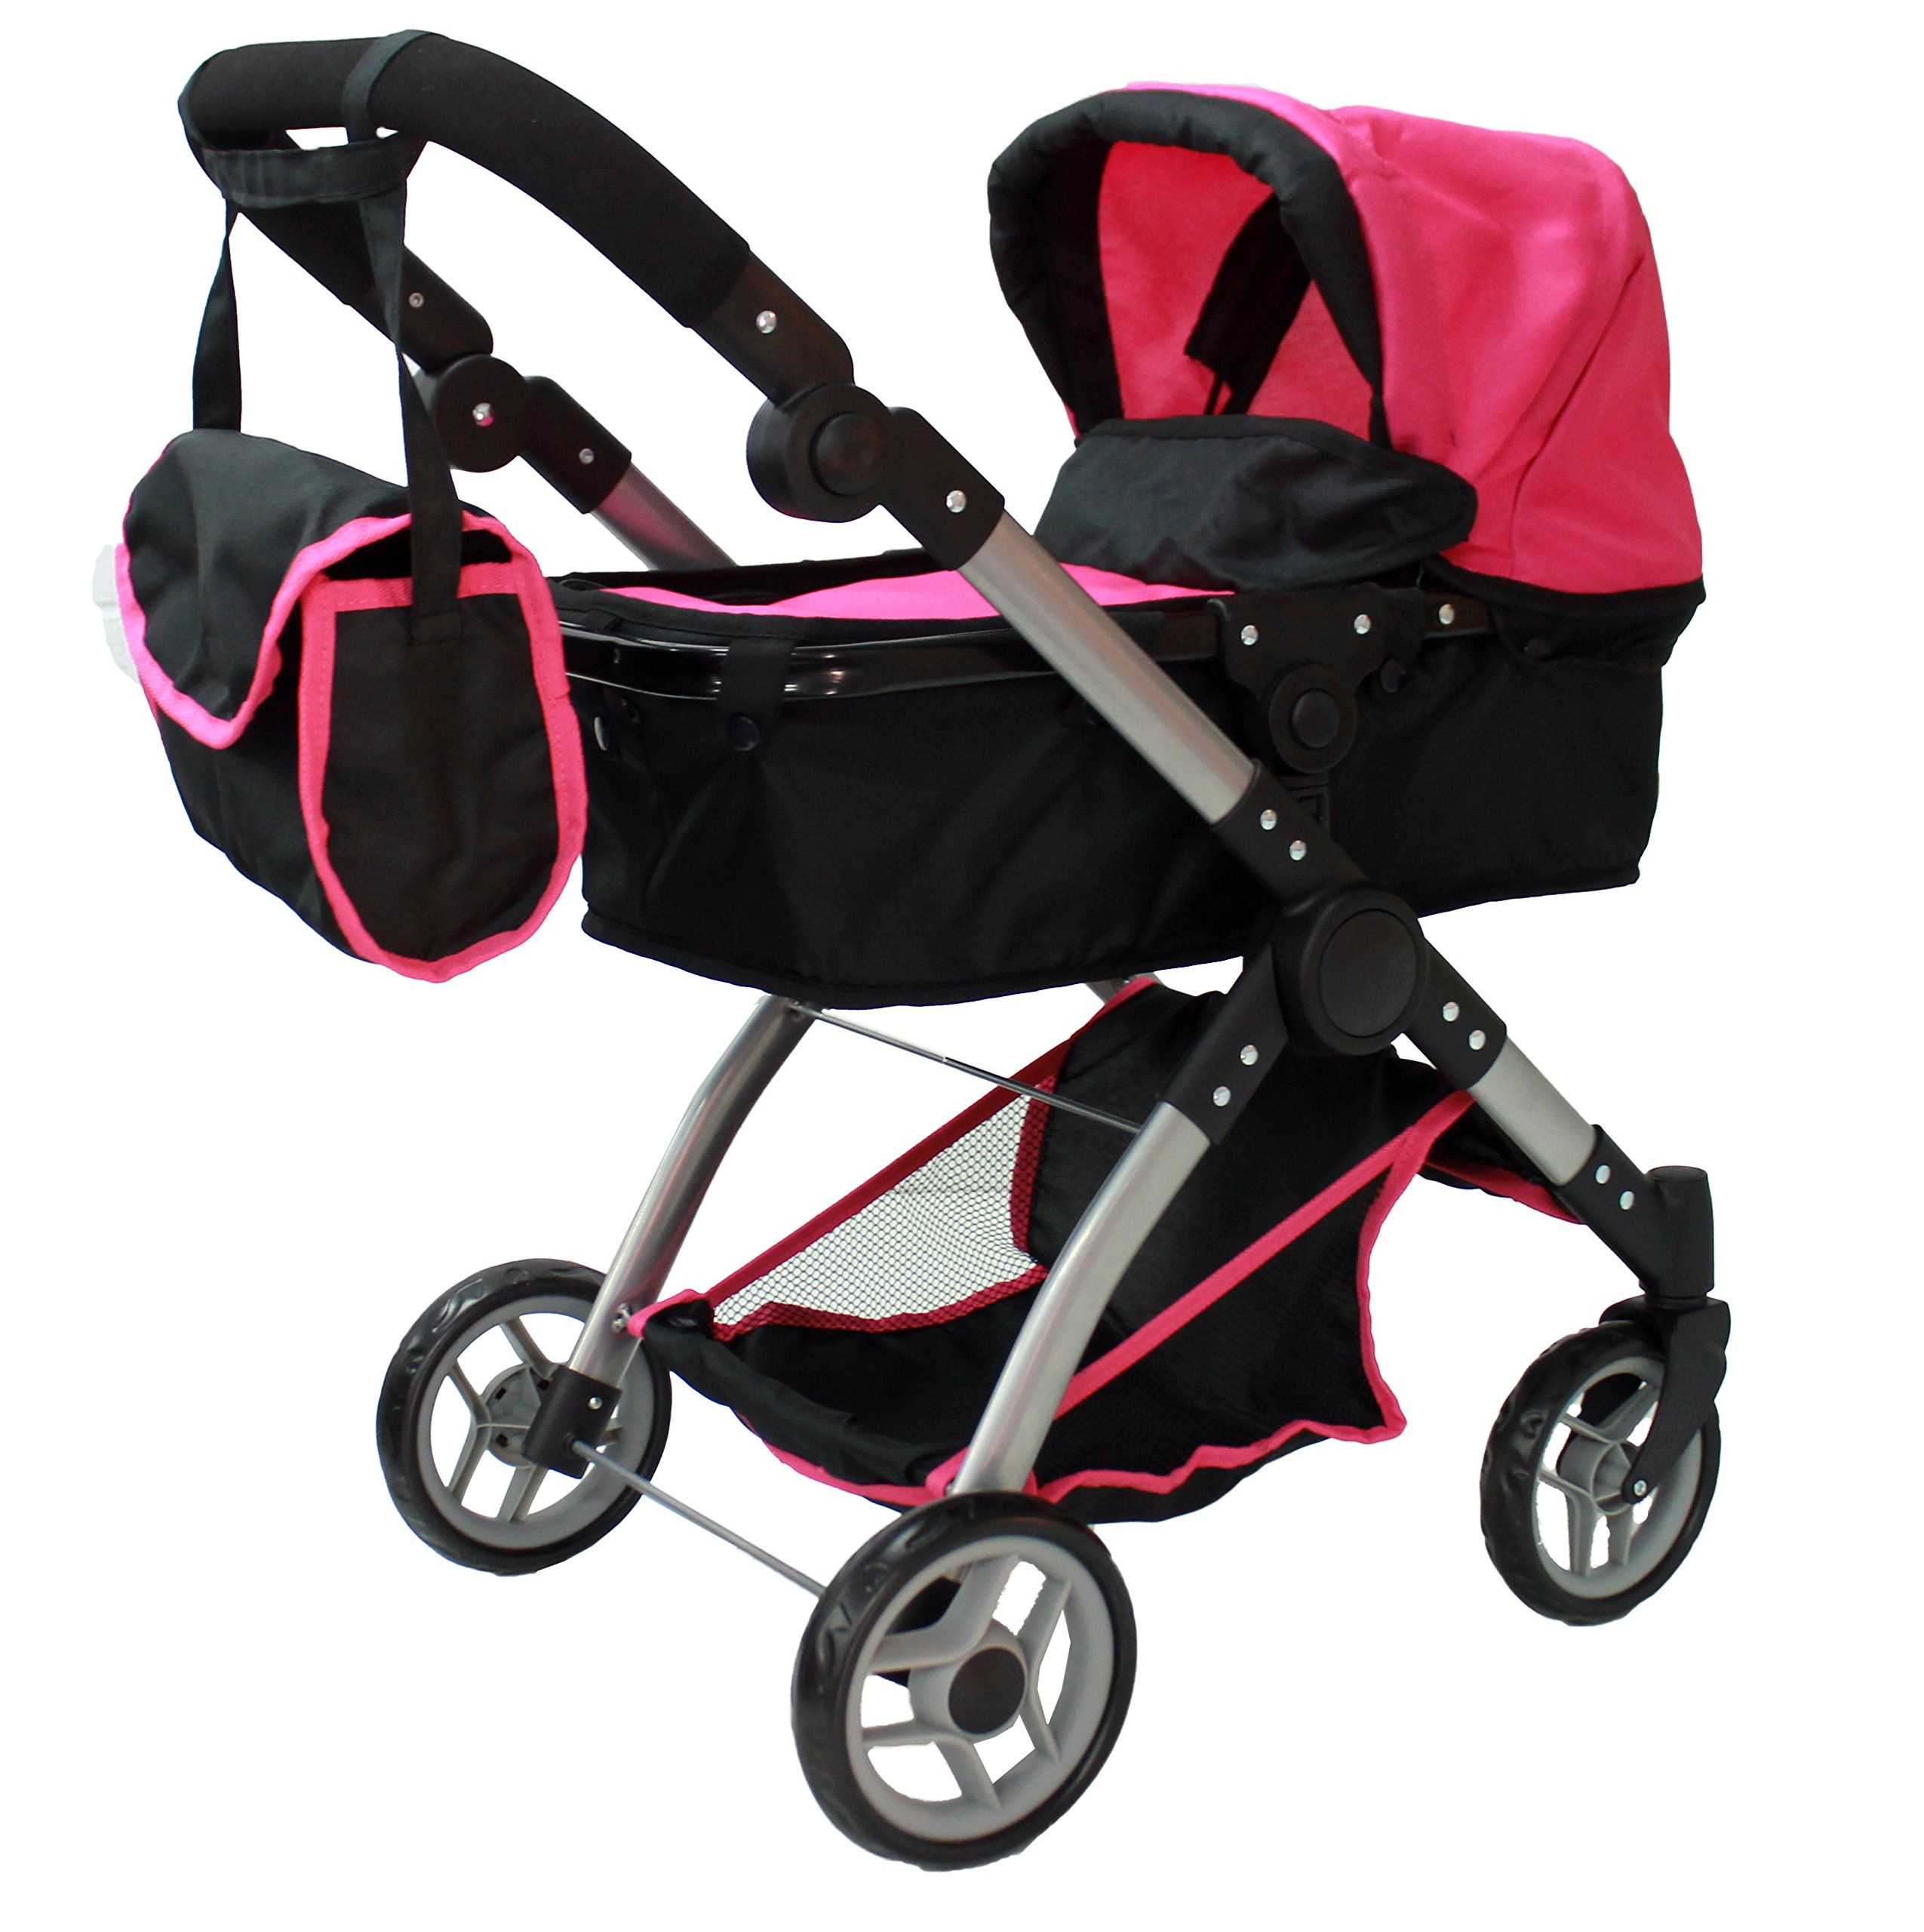 Mommy & me 2 in 1 Deluxe doll stroller (view all photos